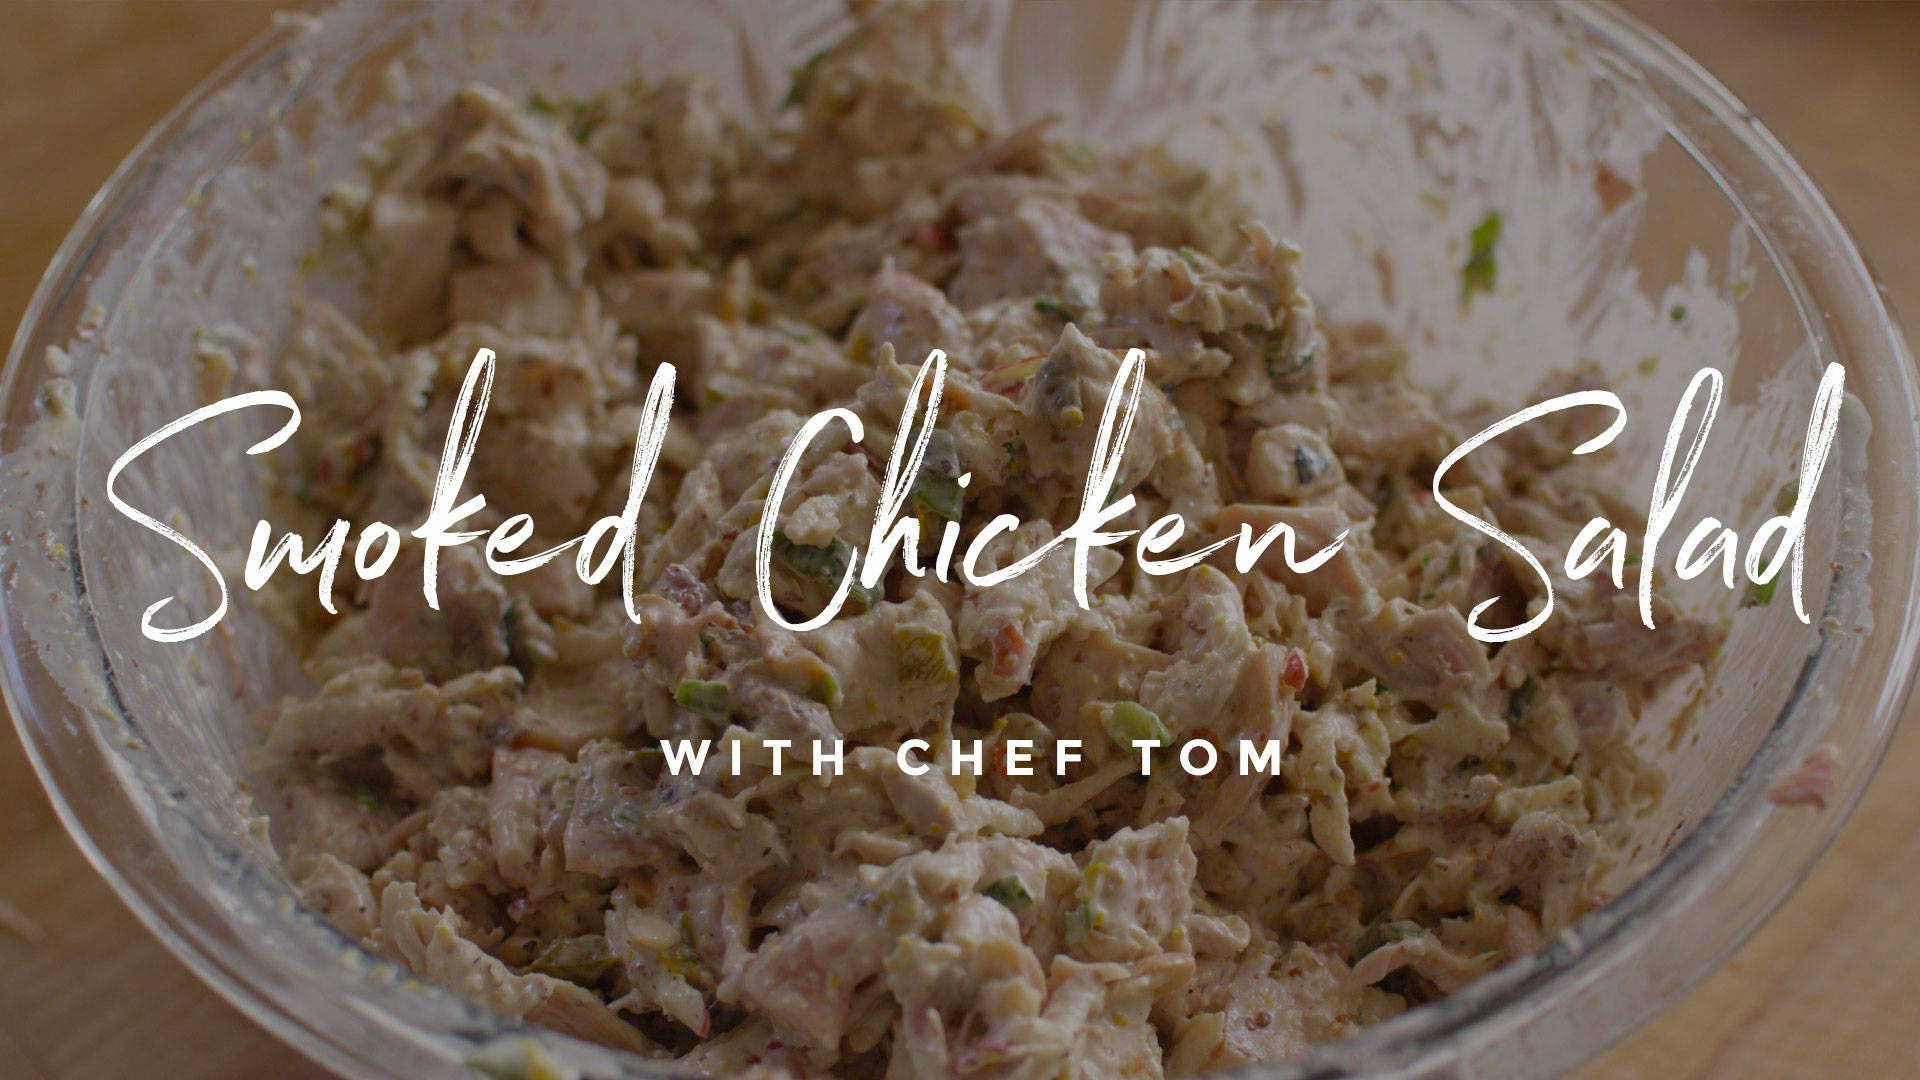 How to make Smoked Chicken Salad